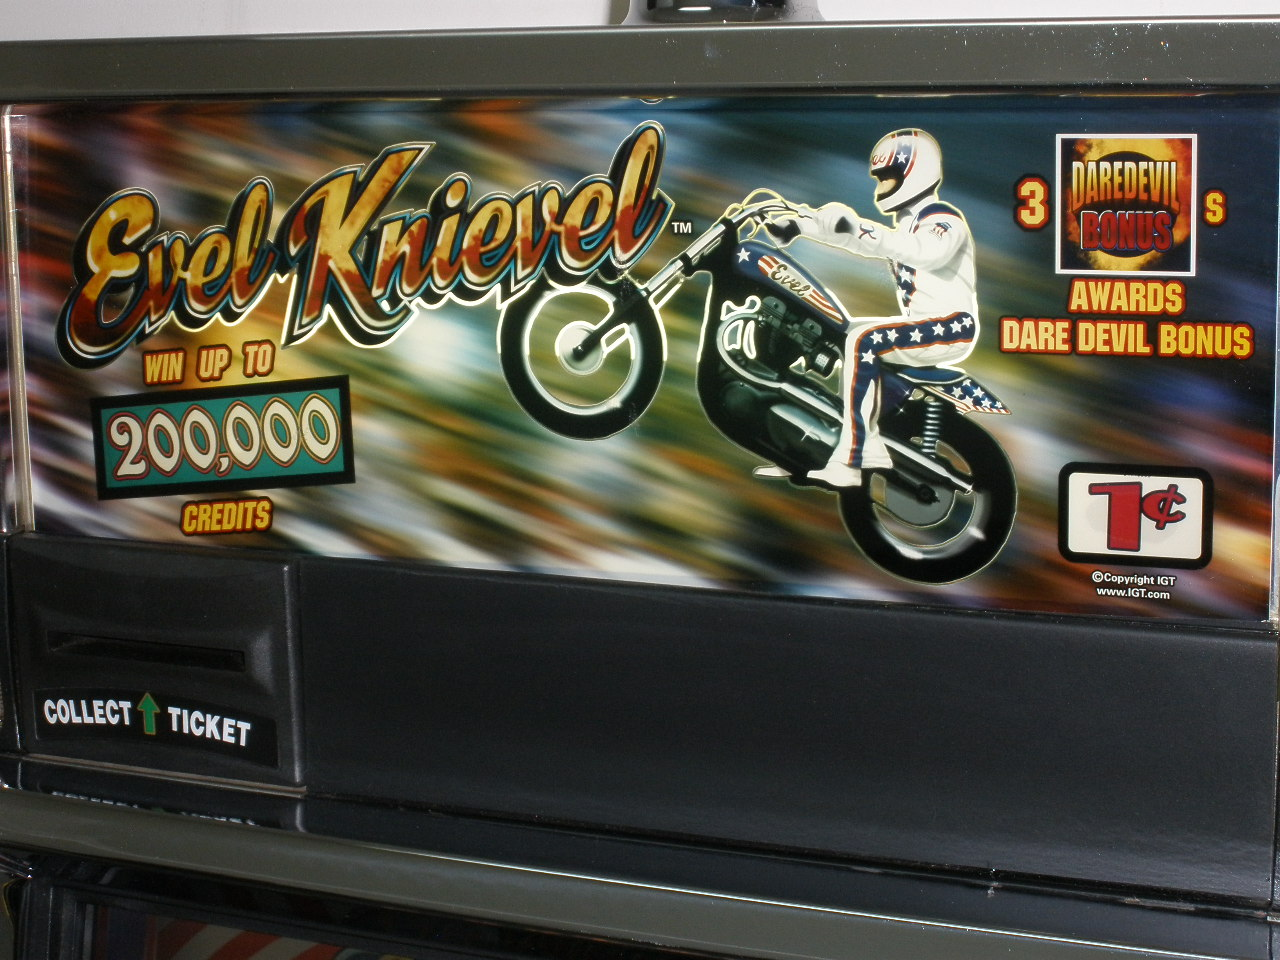 Igt evel knievel video slot machine with lcd touchscreen monitor rare